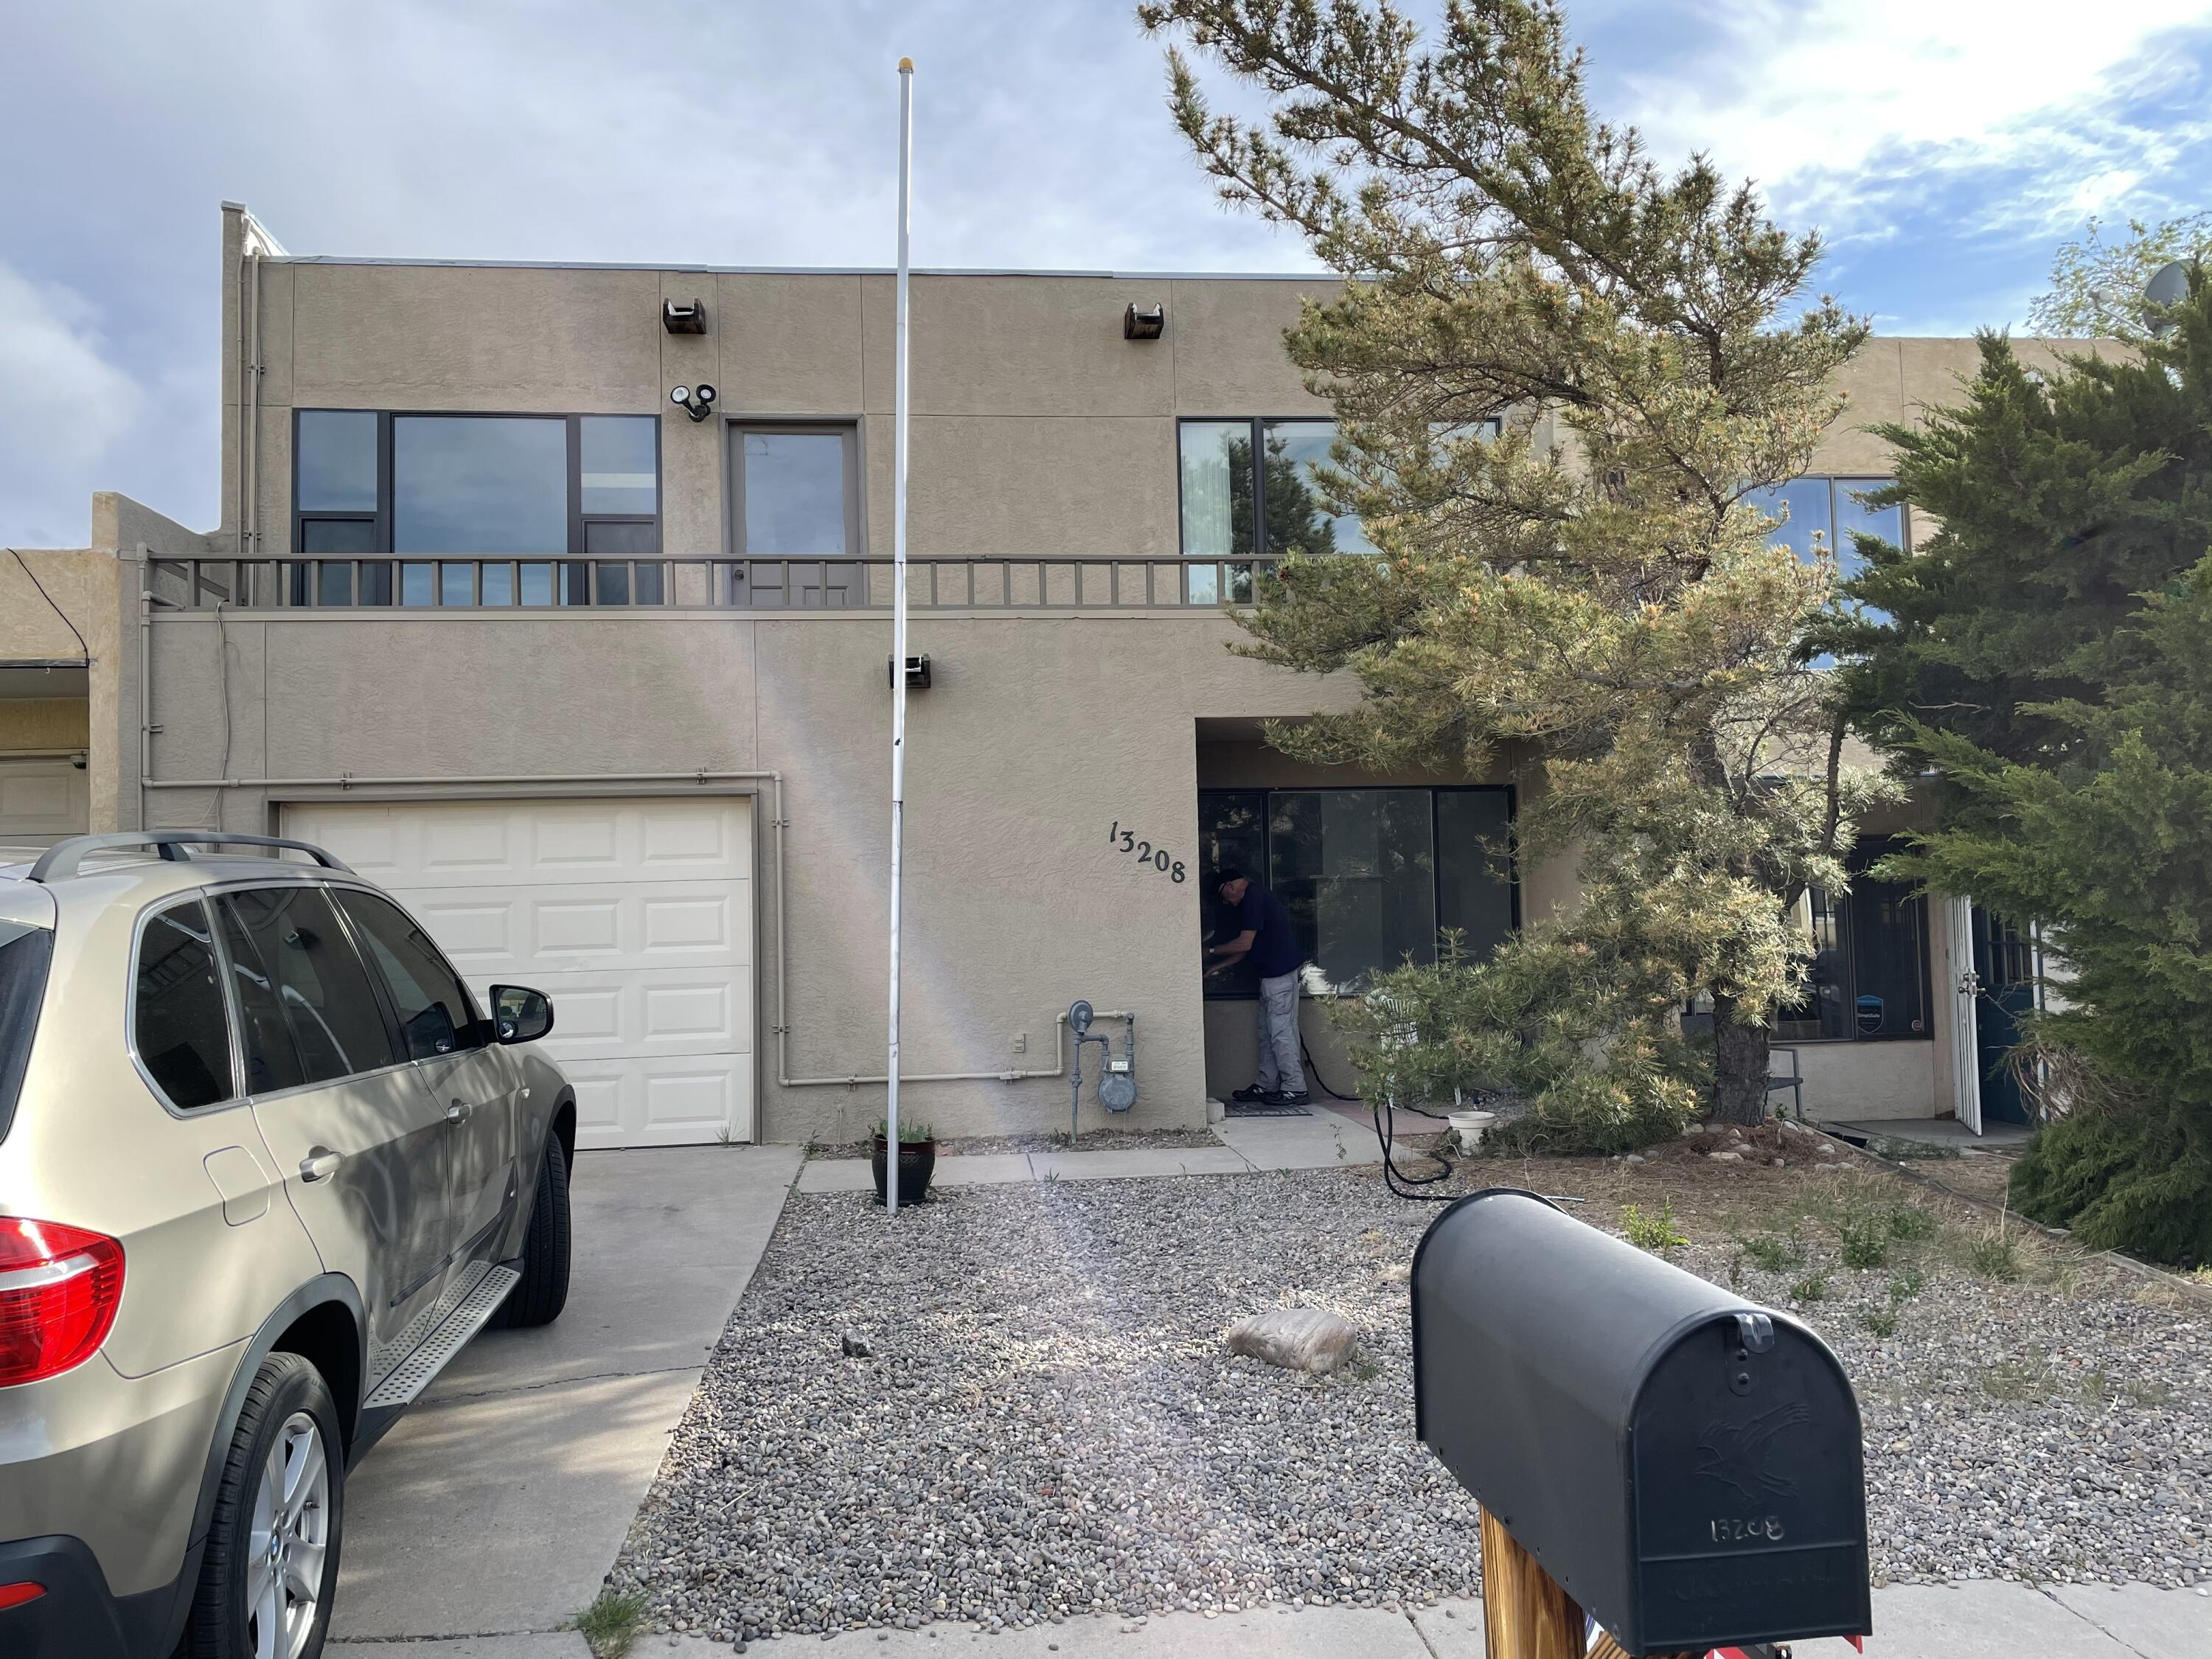 Spacious Townhouse!,  Open floor Plan with Much Light!, Cathedral Ceilings Bamboo Floors, Fire Place, Skylights, 4 Large Bedrooms with Access to a Balcony or Porch, Front Balcony with Views of the Sandia Mountains,  2 Full Bath, 1 Car Garage,  Washer and Dryer Stay, Close to Walking Trails, Parks and Shopping, Easy Access to Main Roads, Please Follow COVID Guidelines Wear a Mask and Gloves.